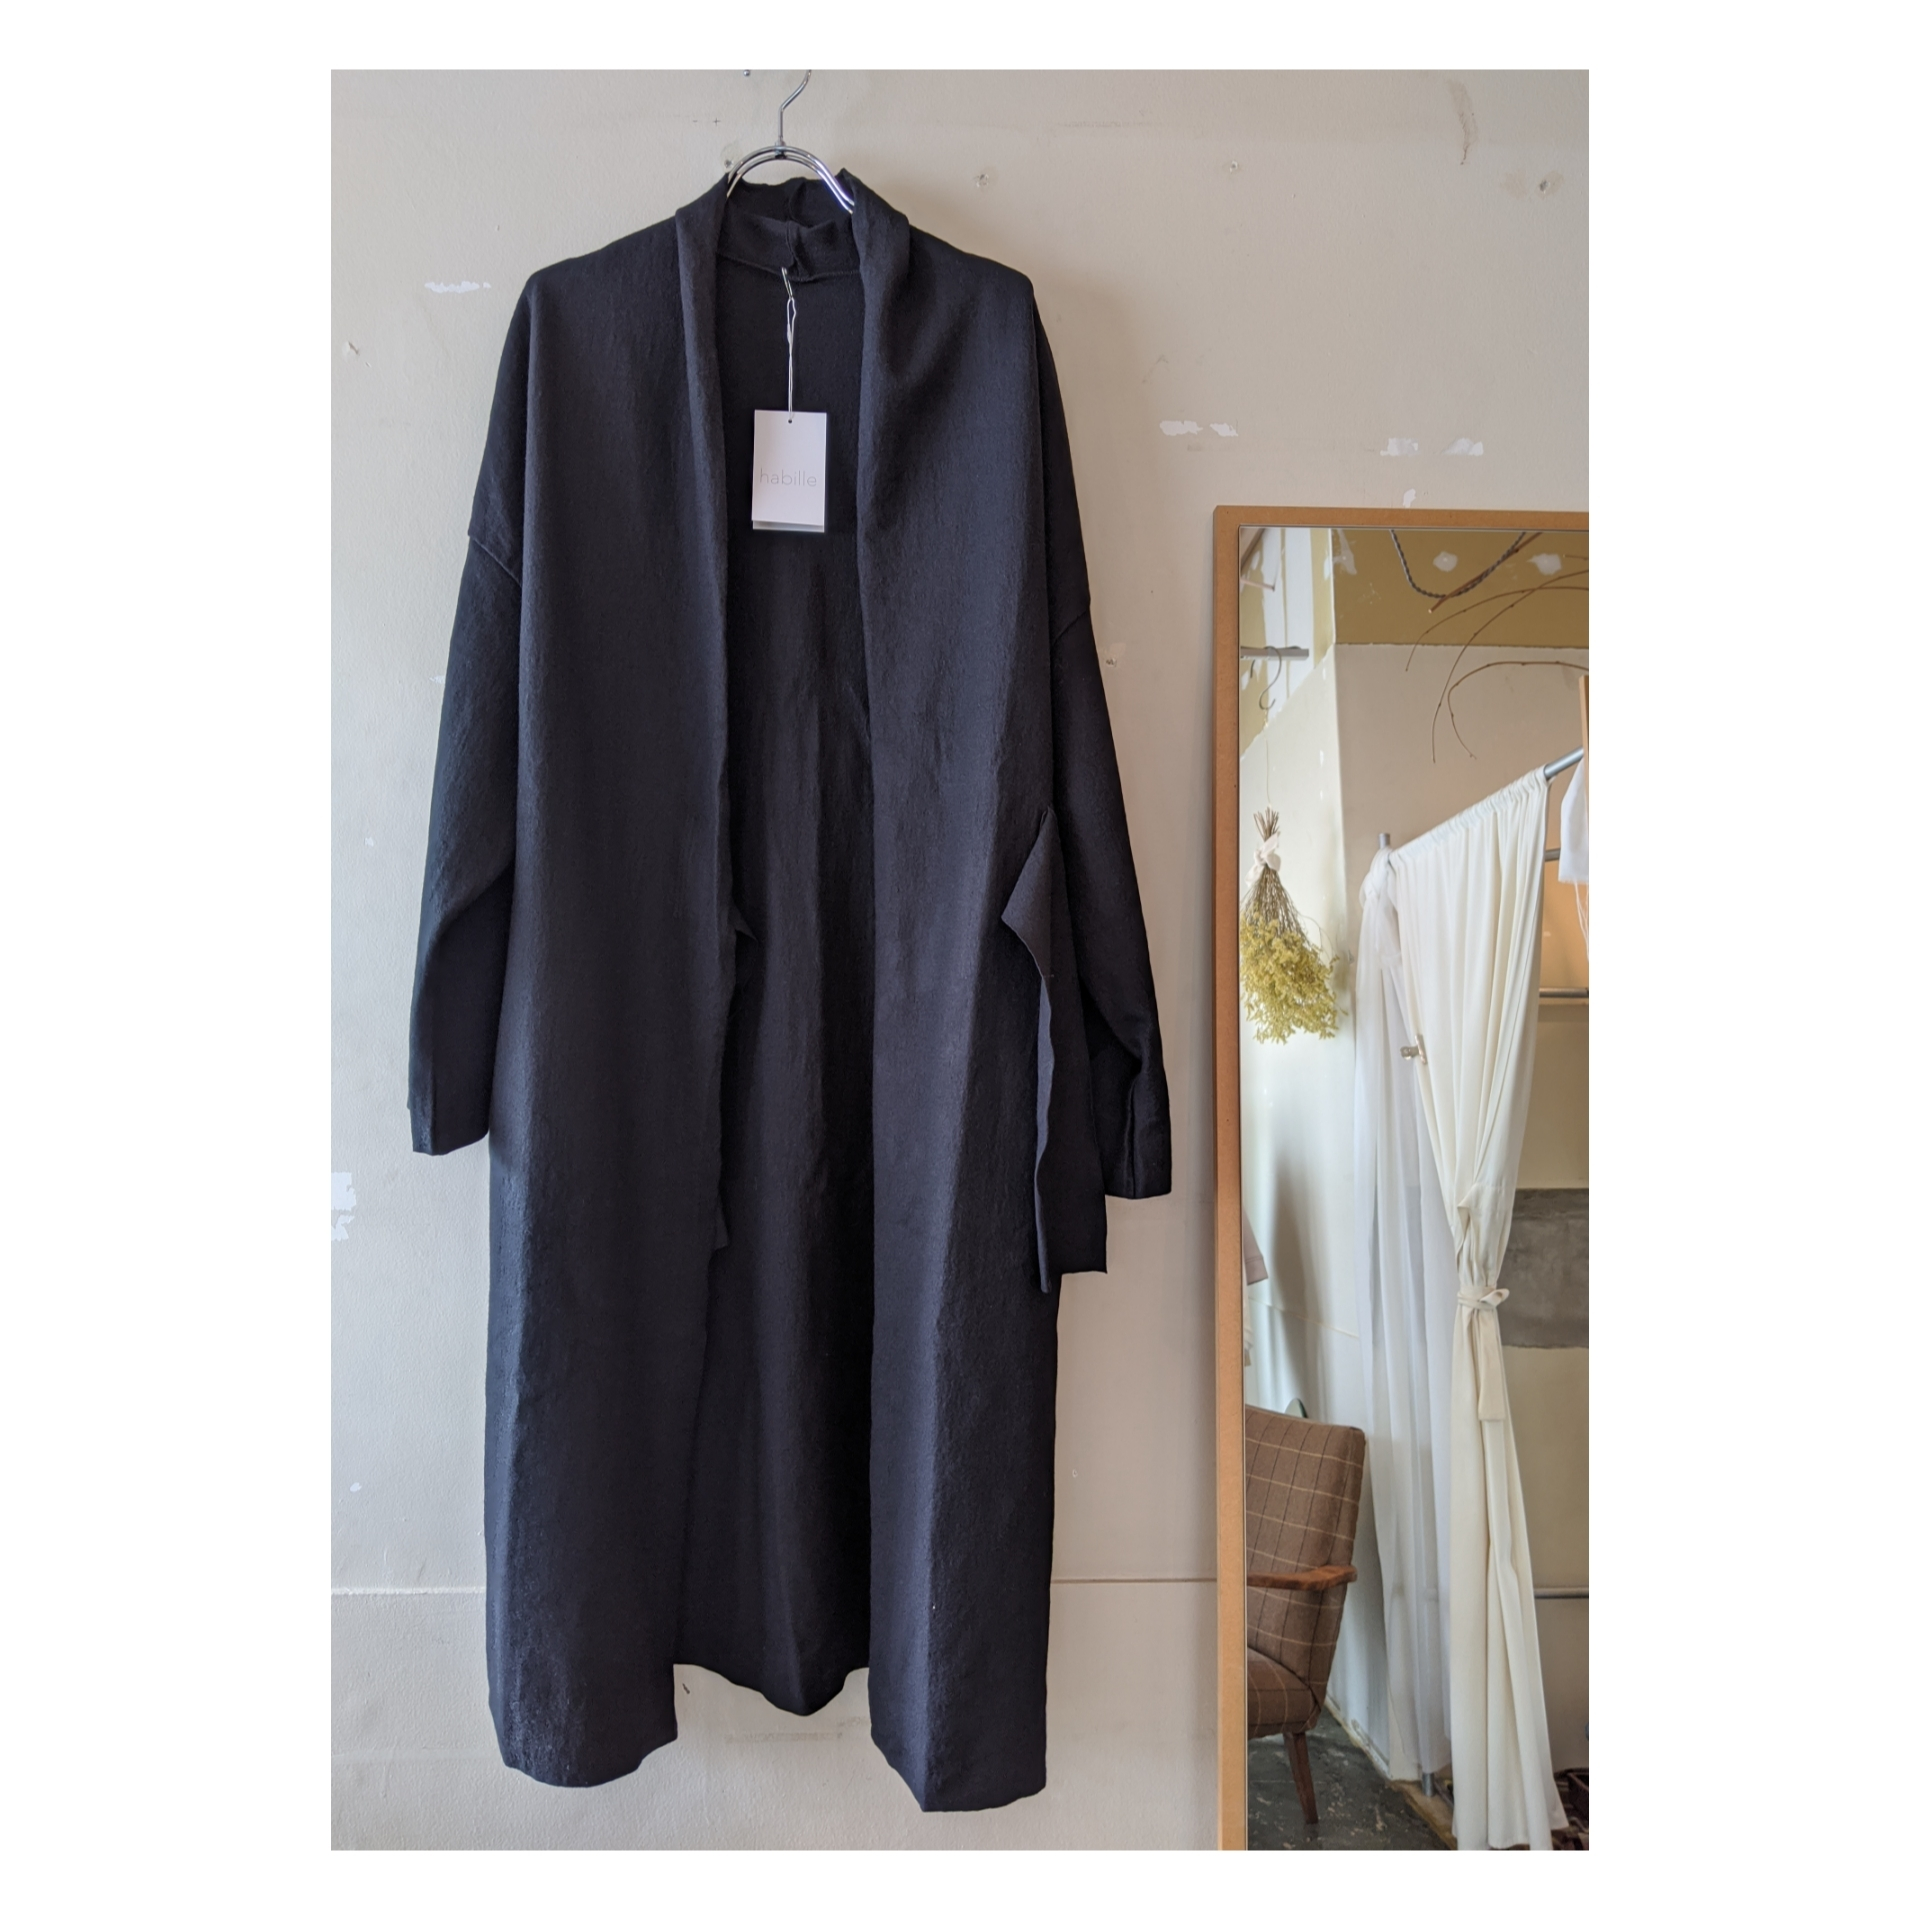 【 habille 】 gown coat / compressed wool / 圧縮ウール / ウールコート / BLACK